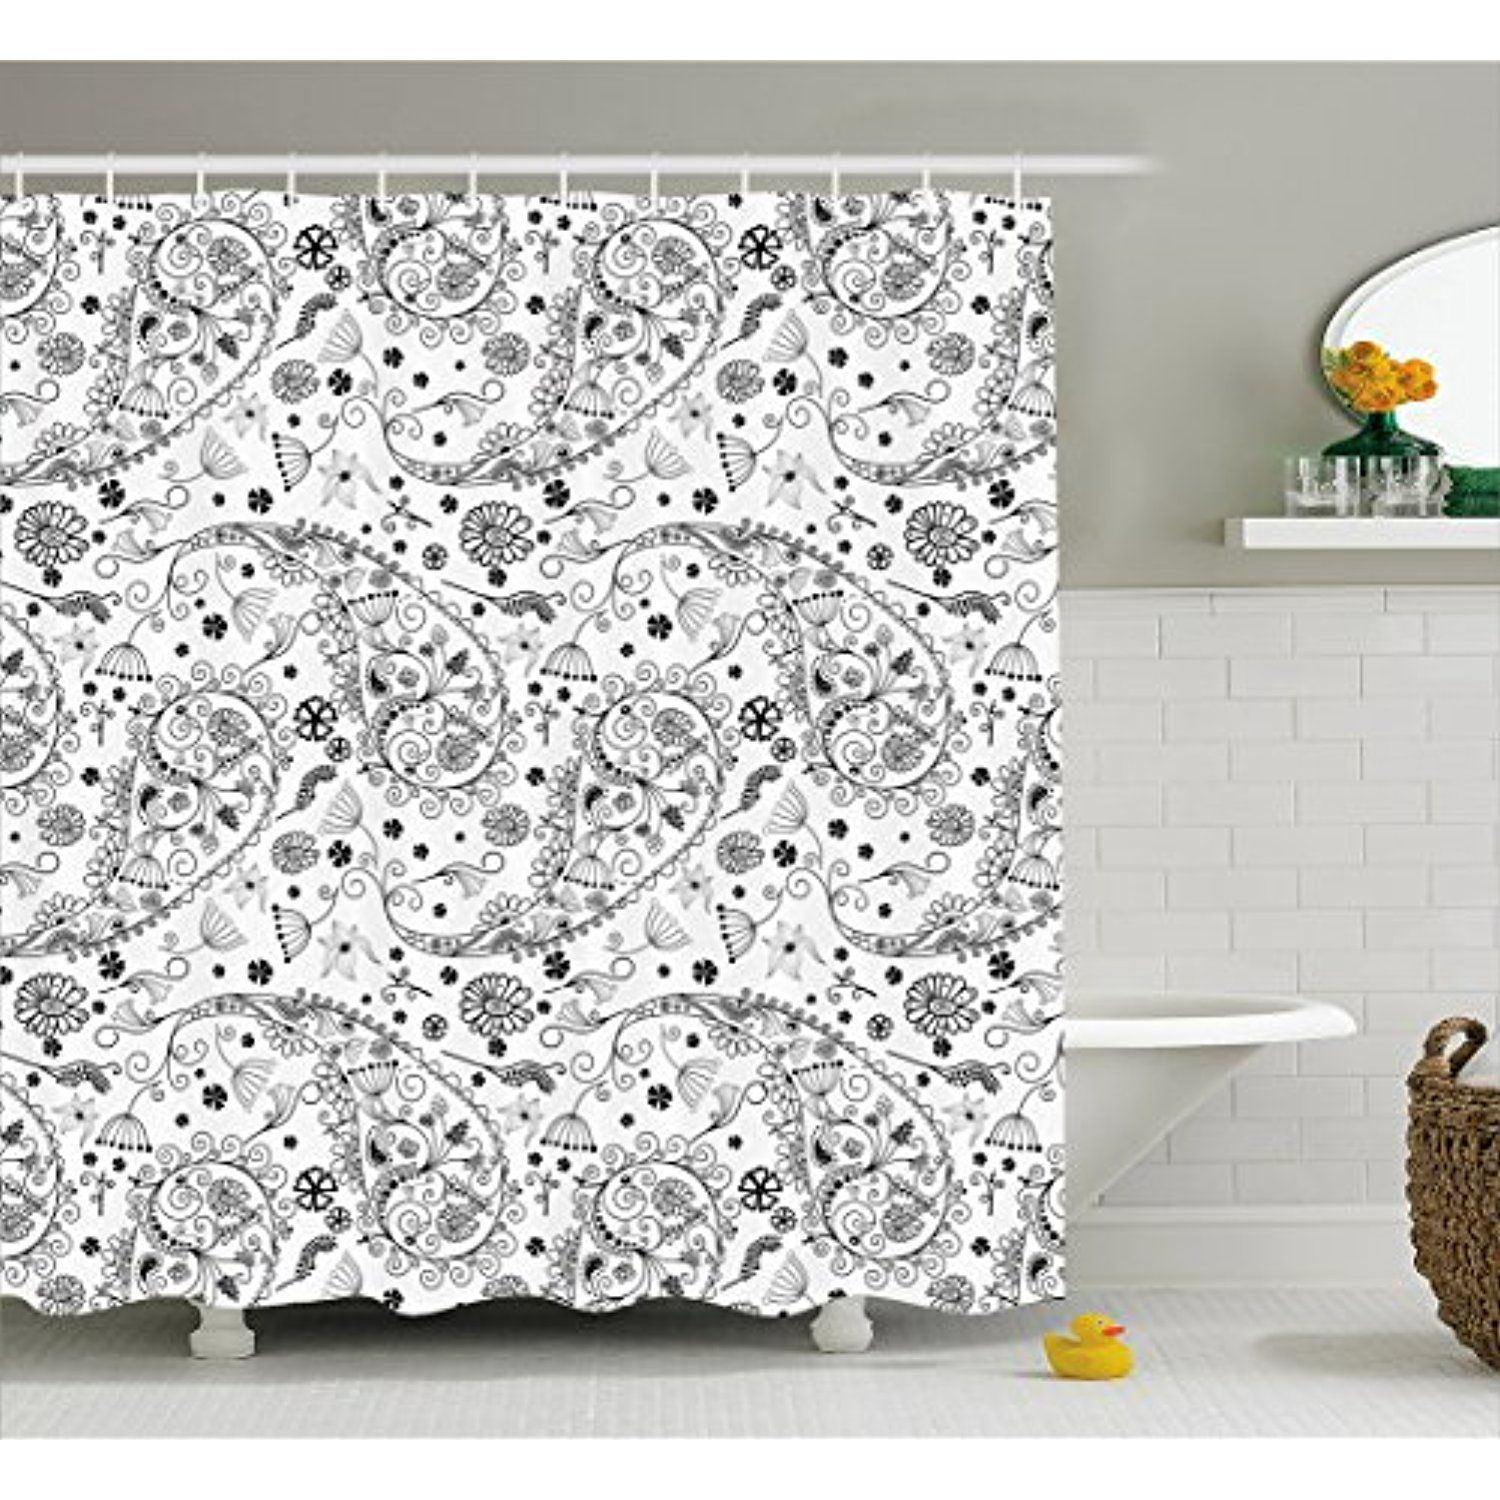 Paisley Shower Curtain By Lunarable Monochrome Flower Pattern With